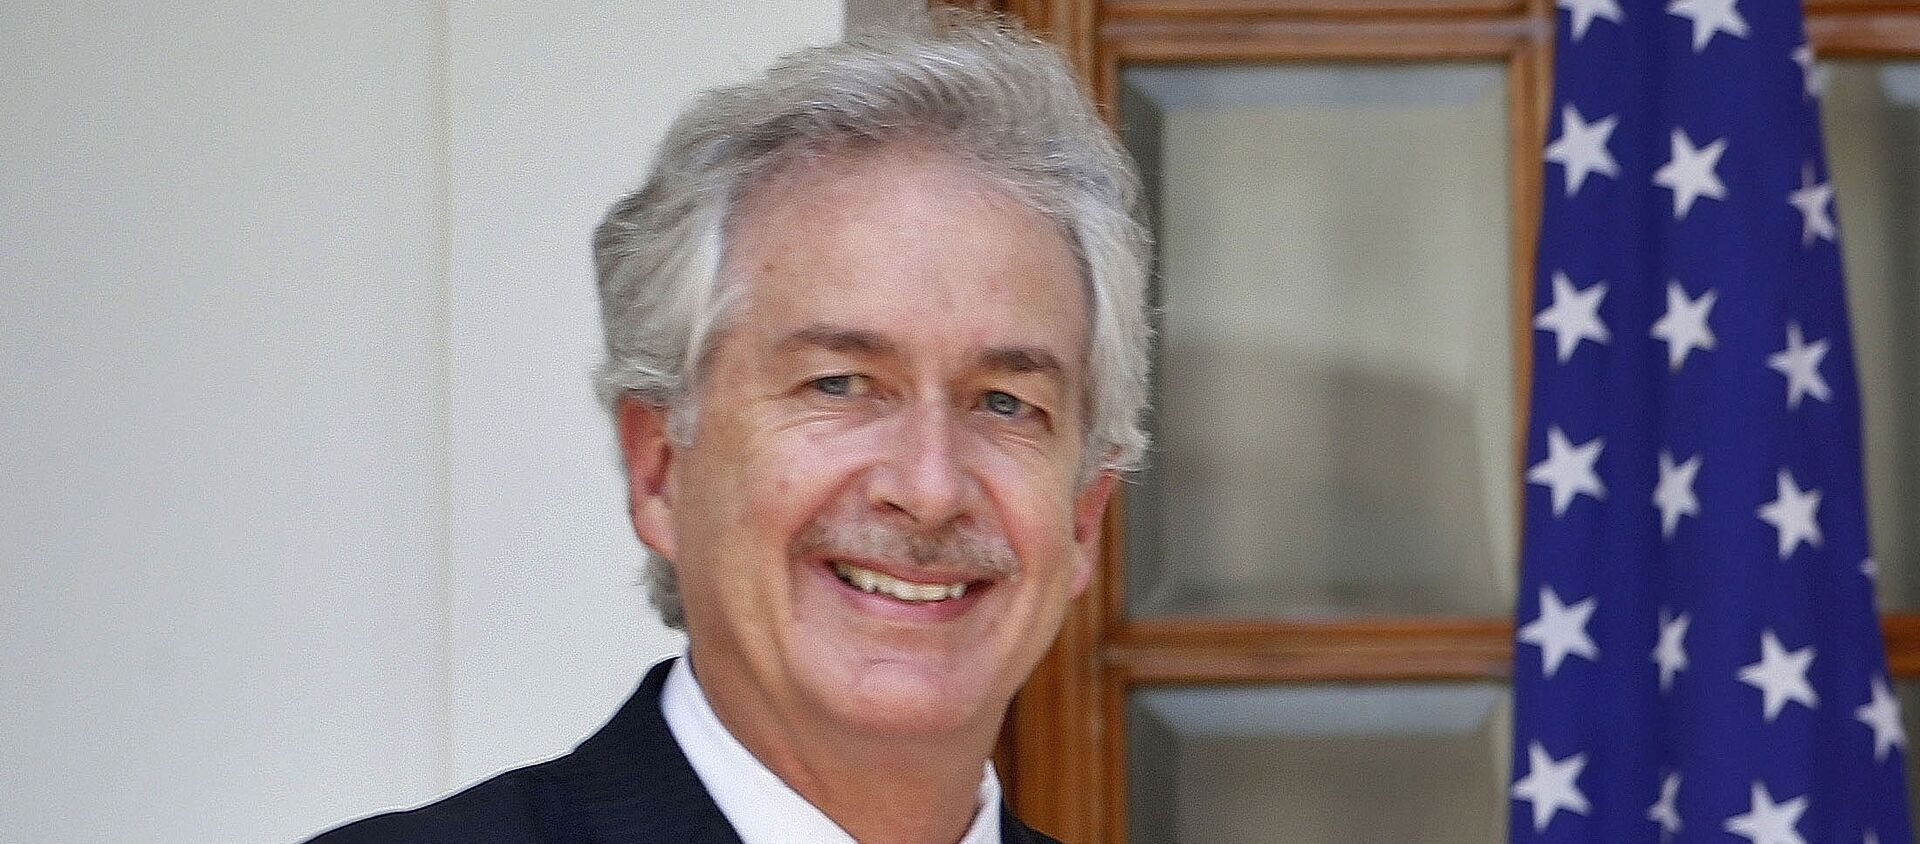 In this July 10, 2014 file photo, then U.S. Deputy Secretary of State William Burns, is shown in New Delhi, India.  President-elect Joe Biden has chosen veteran diplomat William Burns to be his CIA director. Biden made the announcement on Monday.  - Sputnik International, 1920, 10.08.2021